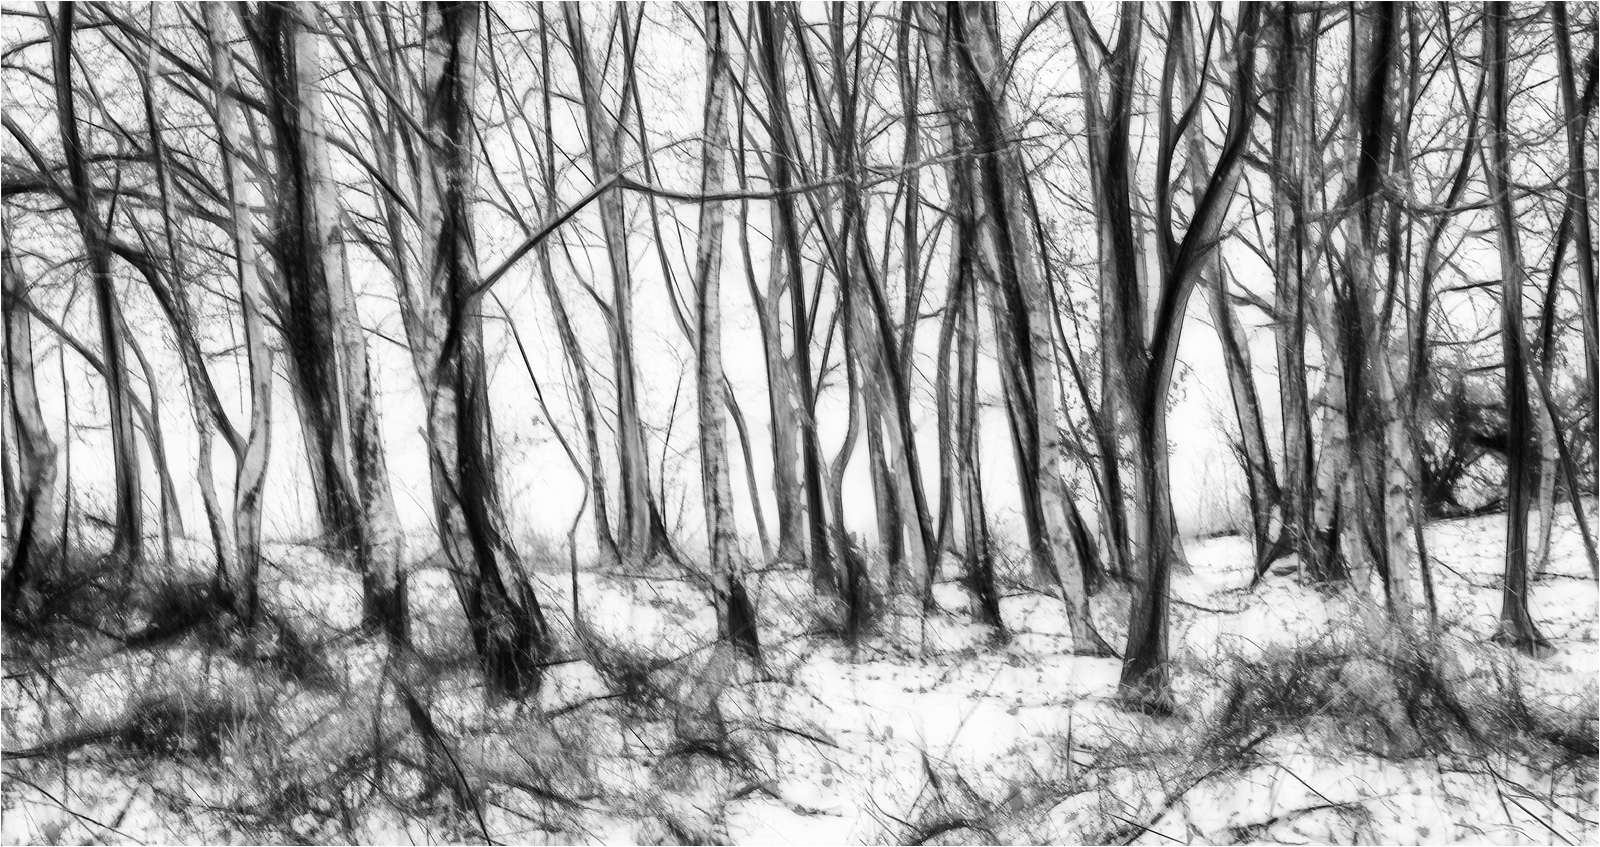 241_Siver Birches in Snow_Fay Bowles ARPS.jpg